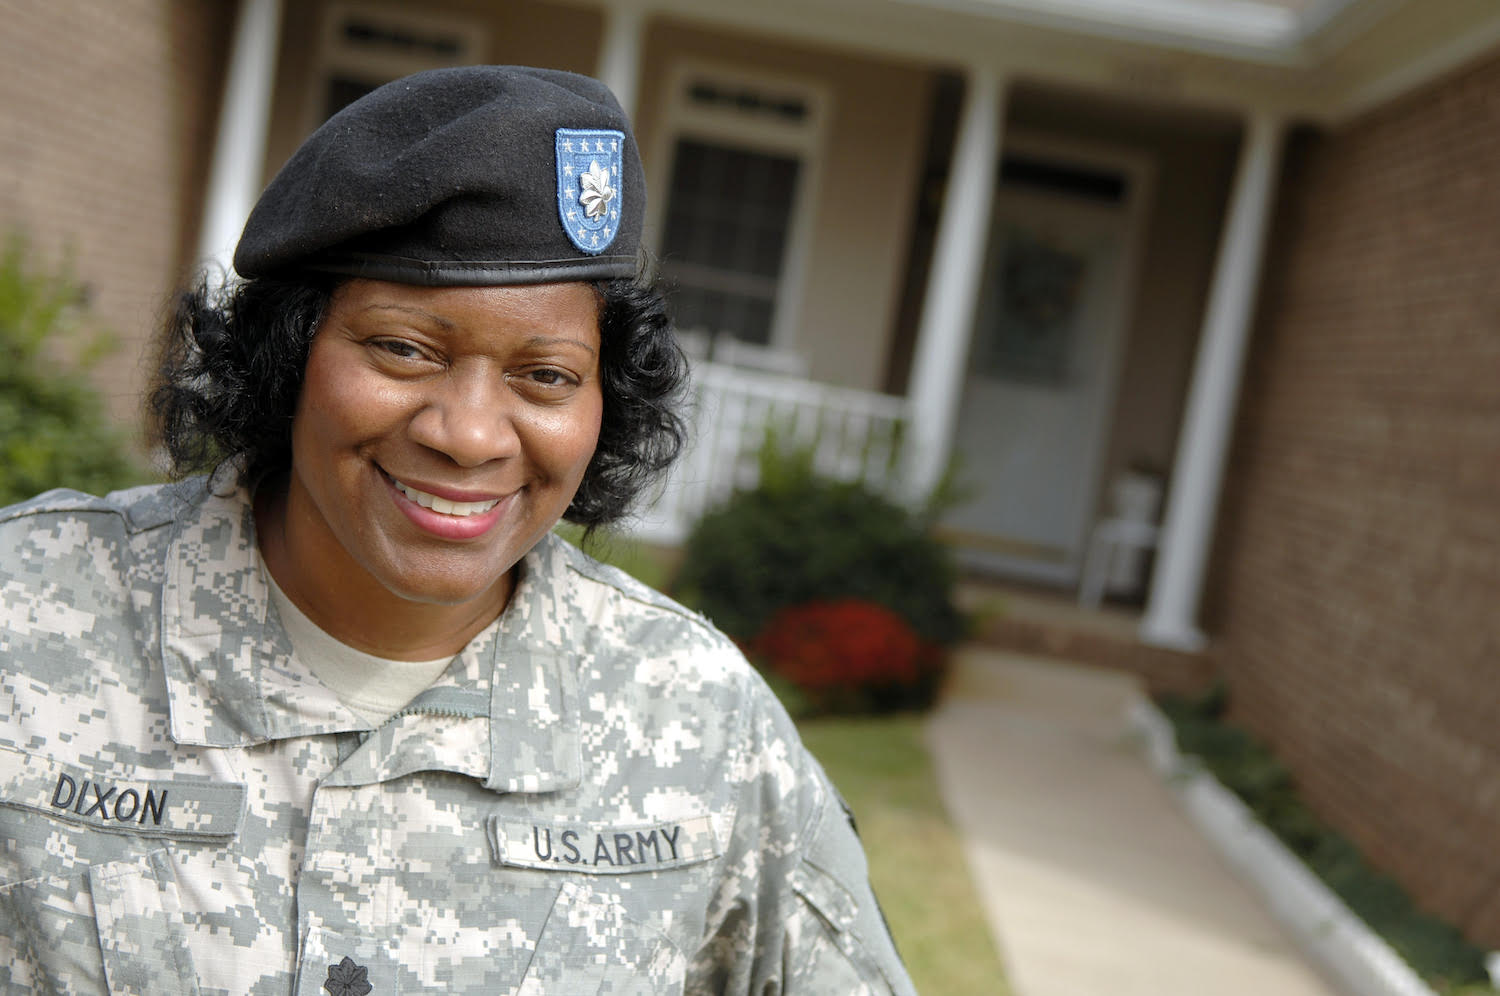 Germanna says it will recruit and retain more veteran employees